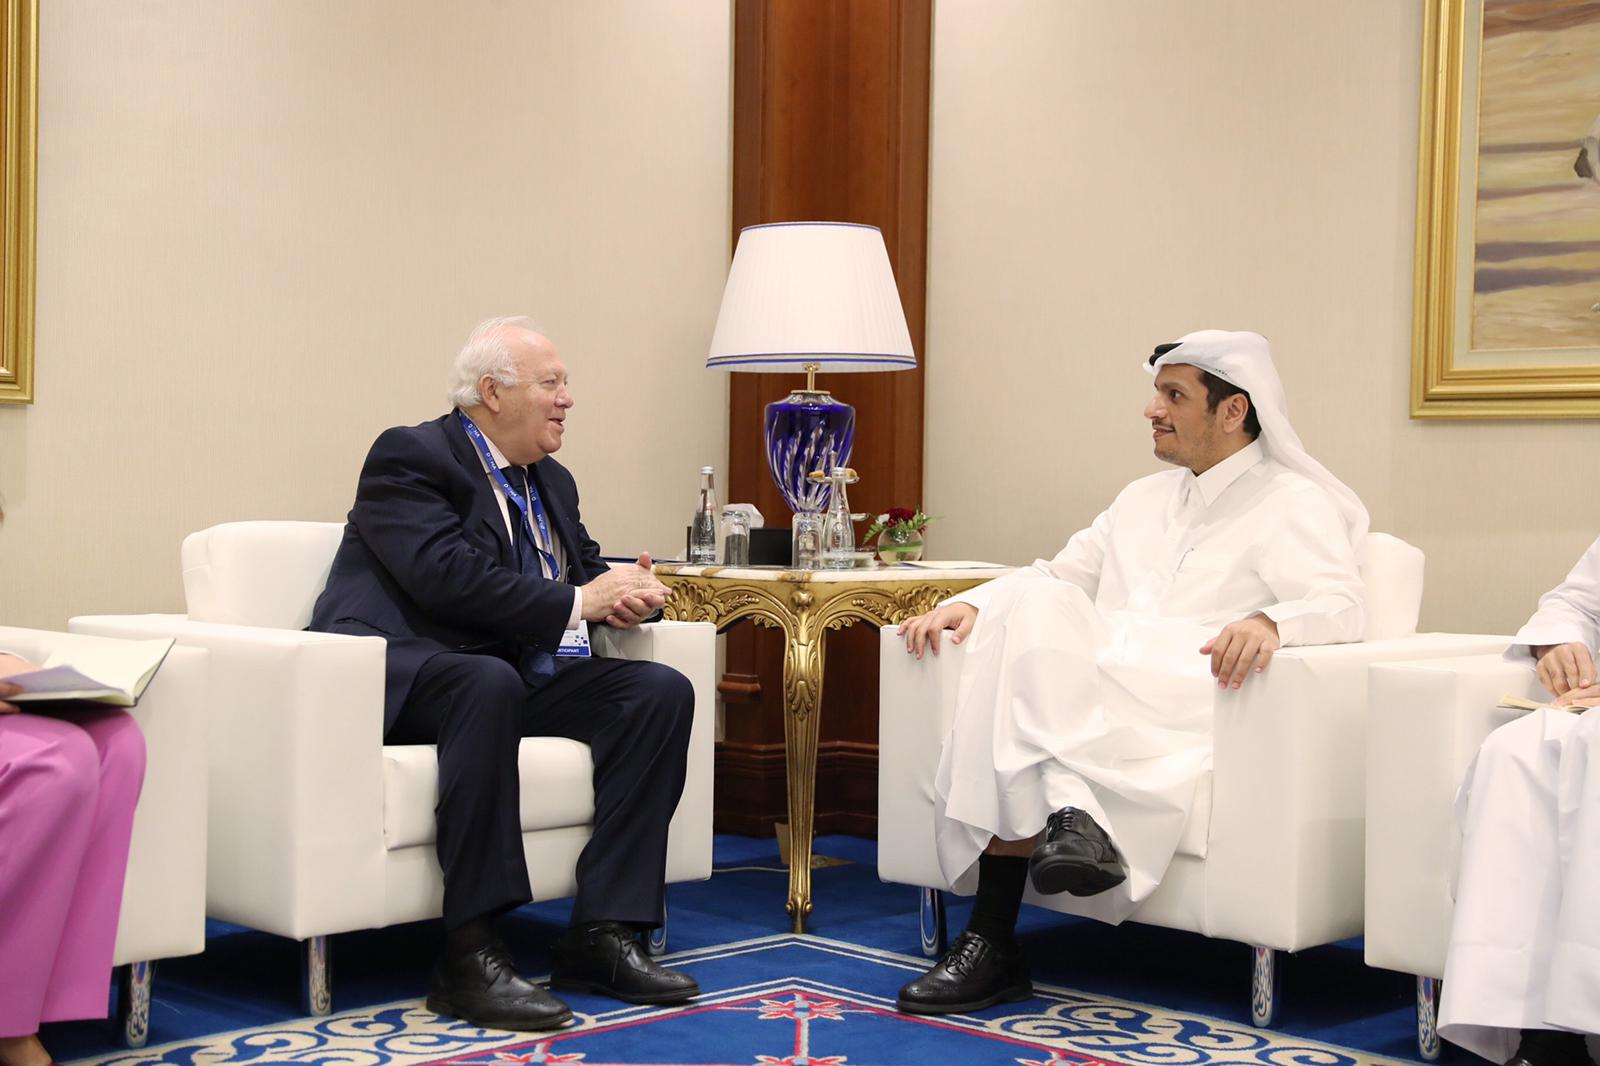 Deputy Prime Minister and Minister of Foreign Affairs Meets Several Officials on Margin of Doha Forum